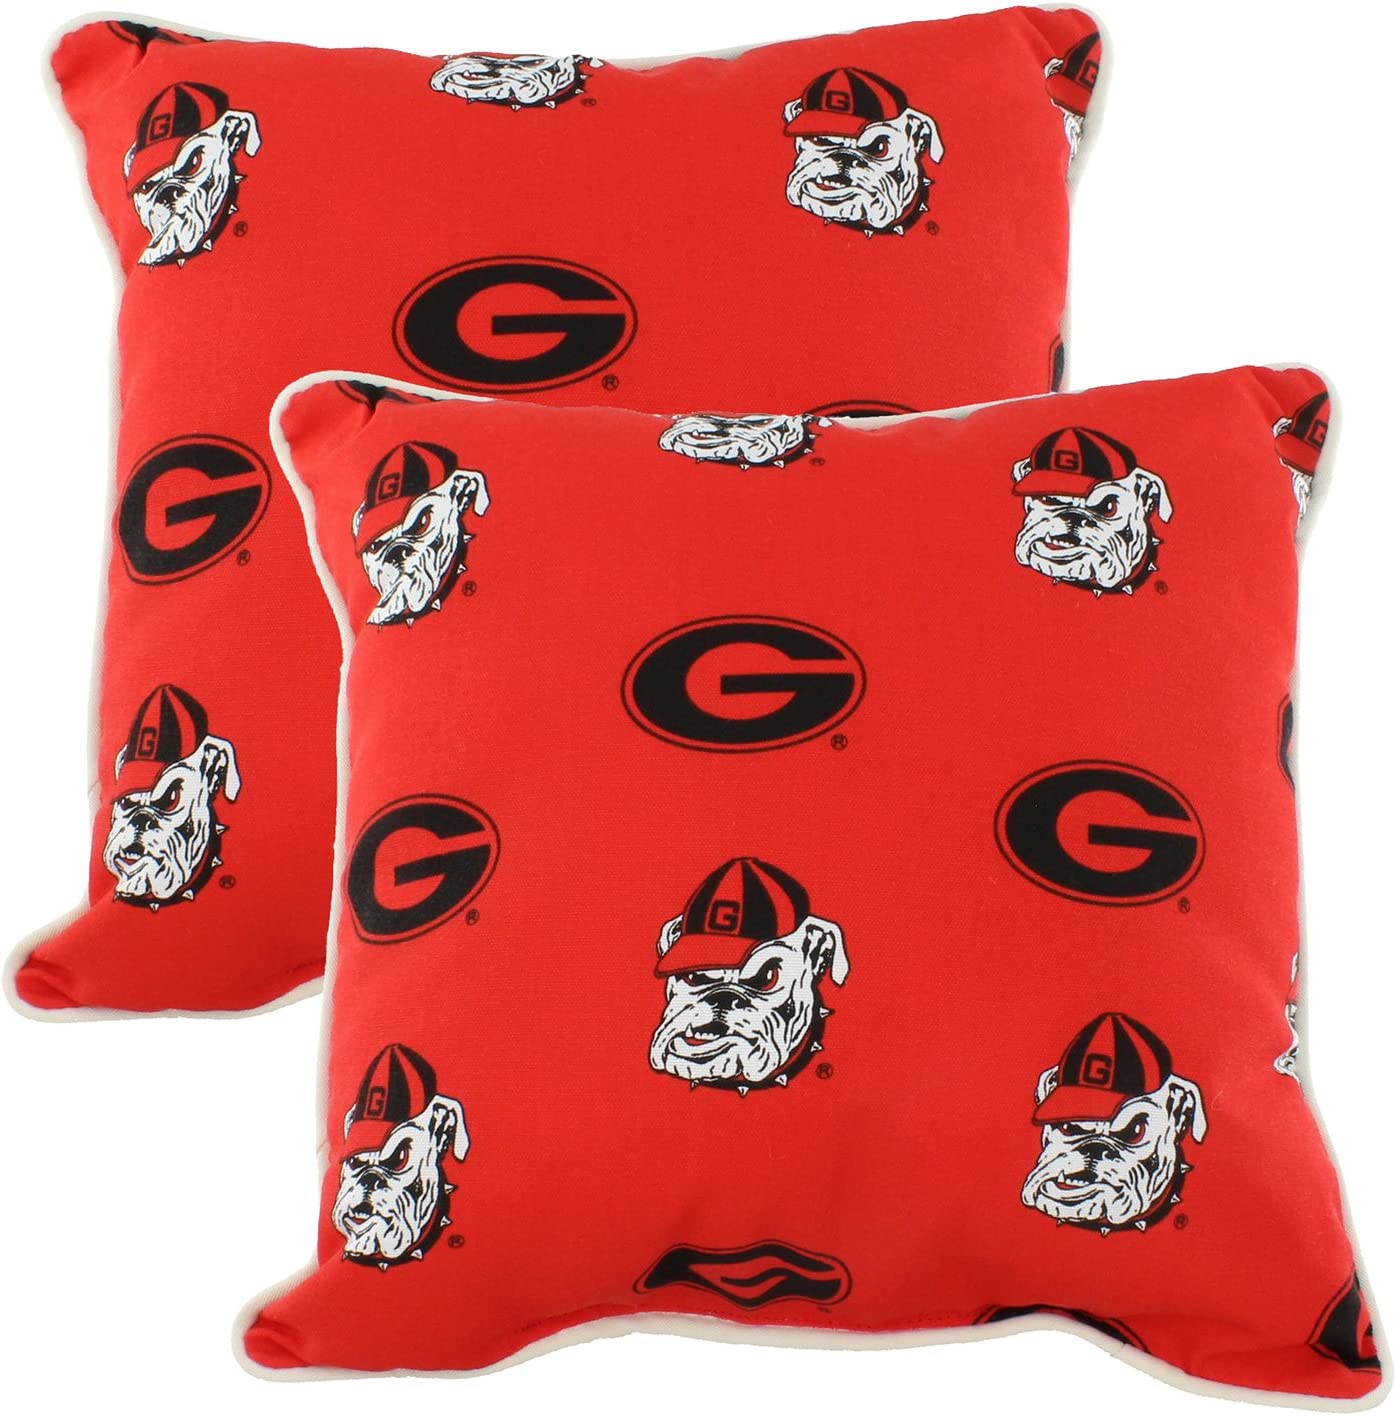 College Covers Georgia Bulldogs Decorative Pillow Max 75% Max 62% OFF OFF Pair- Outdoor